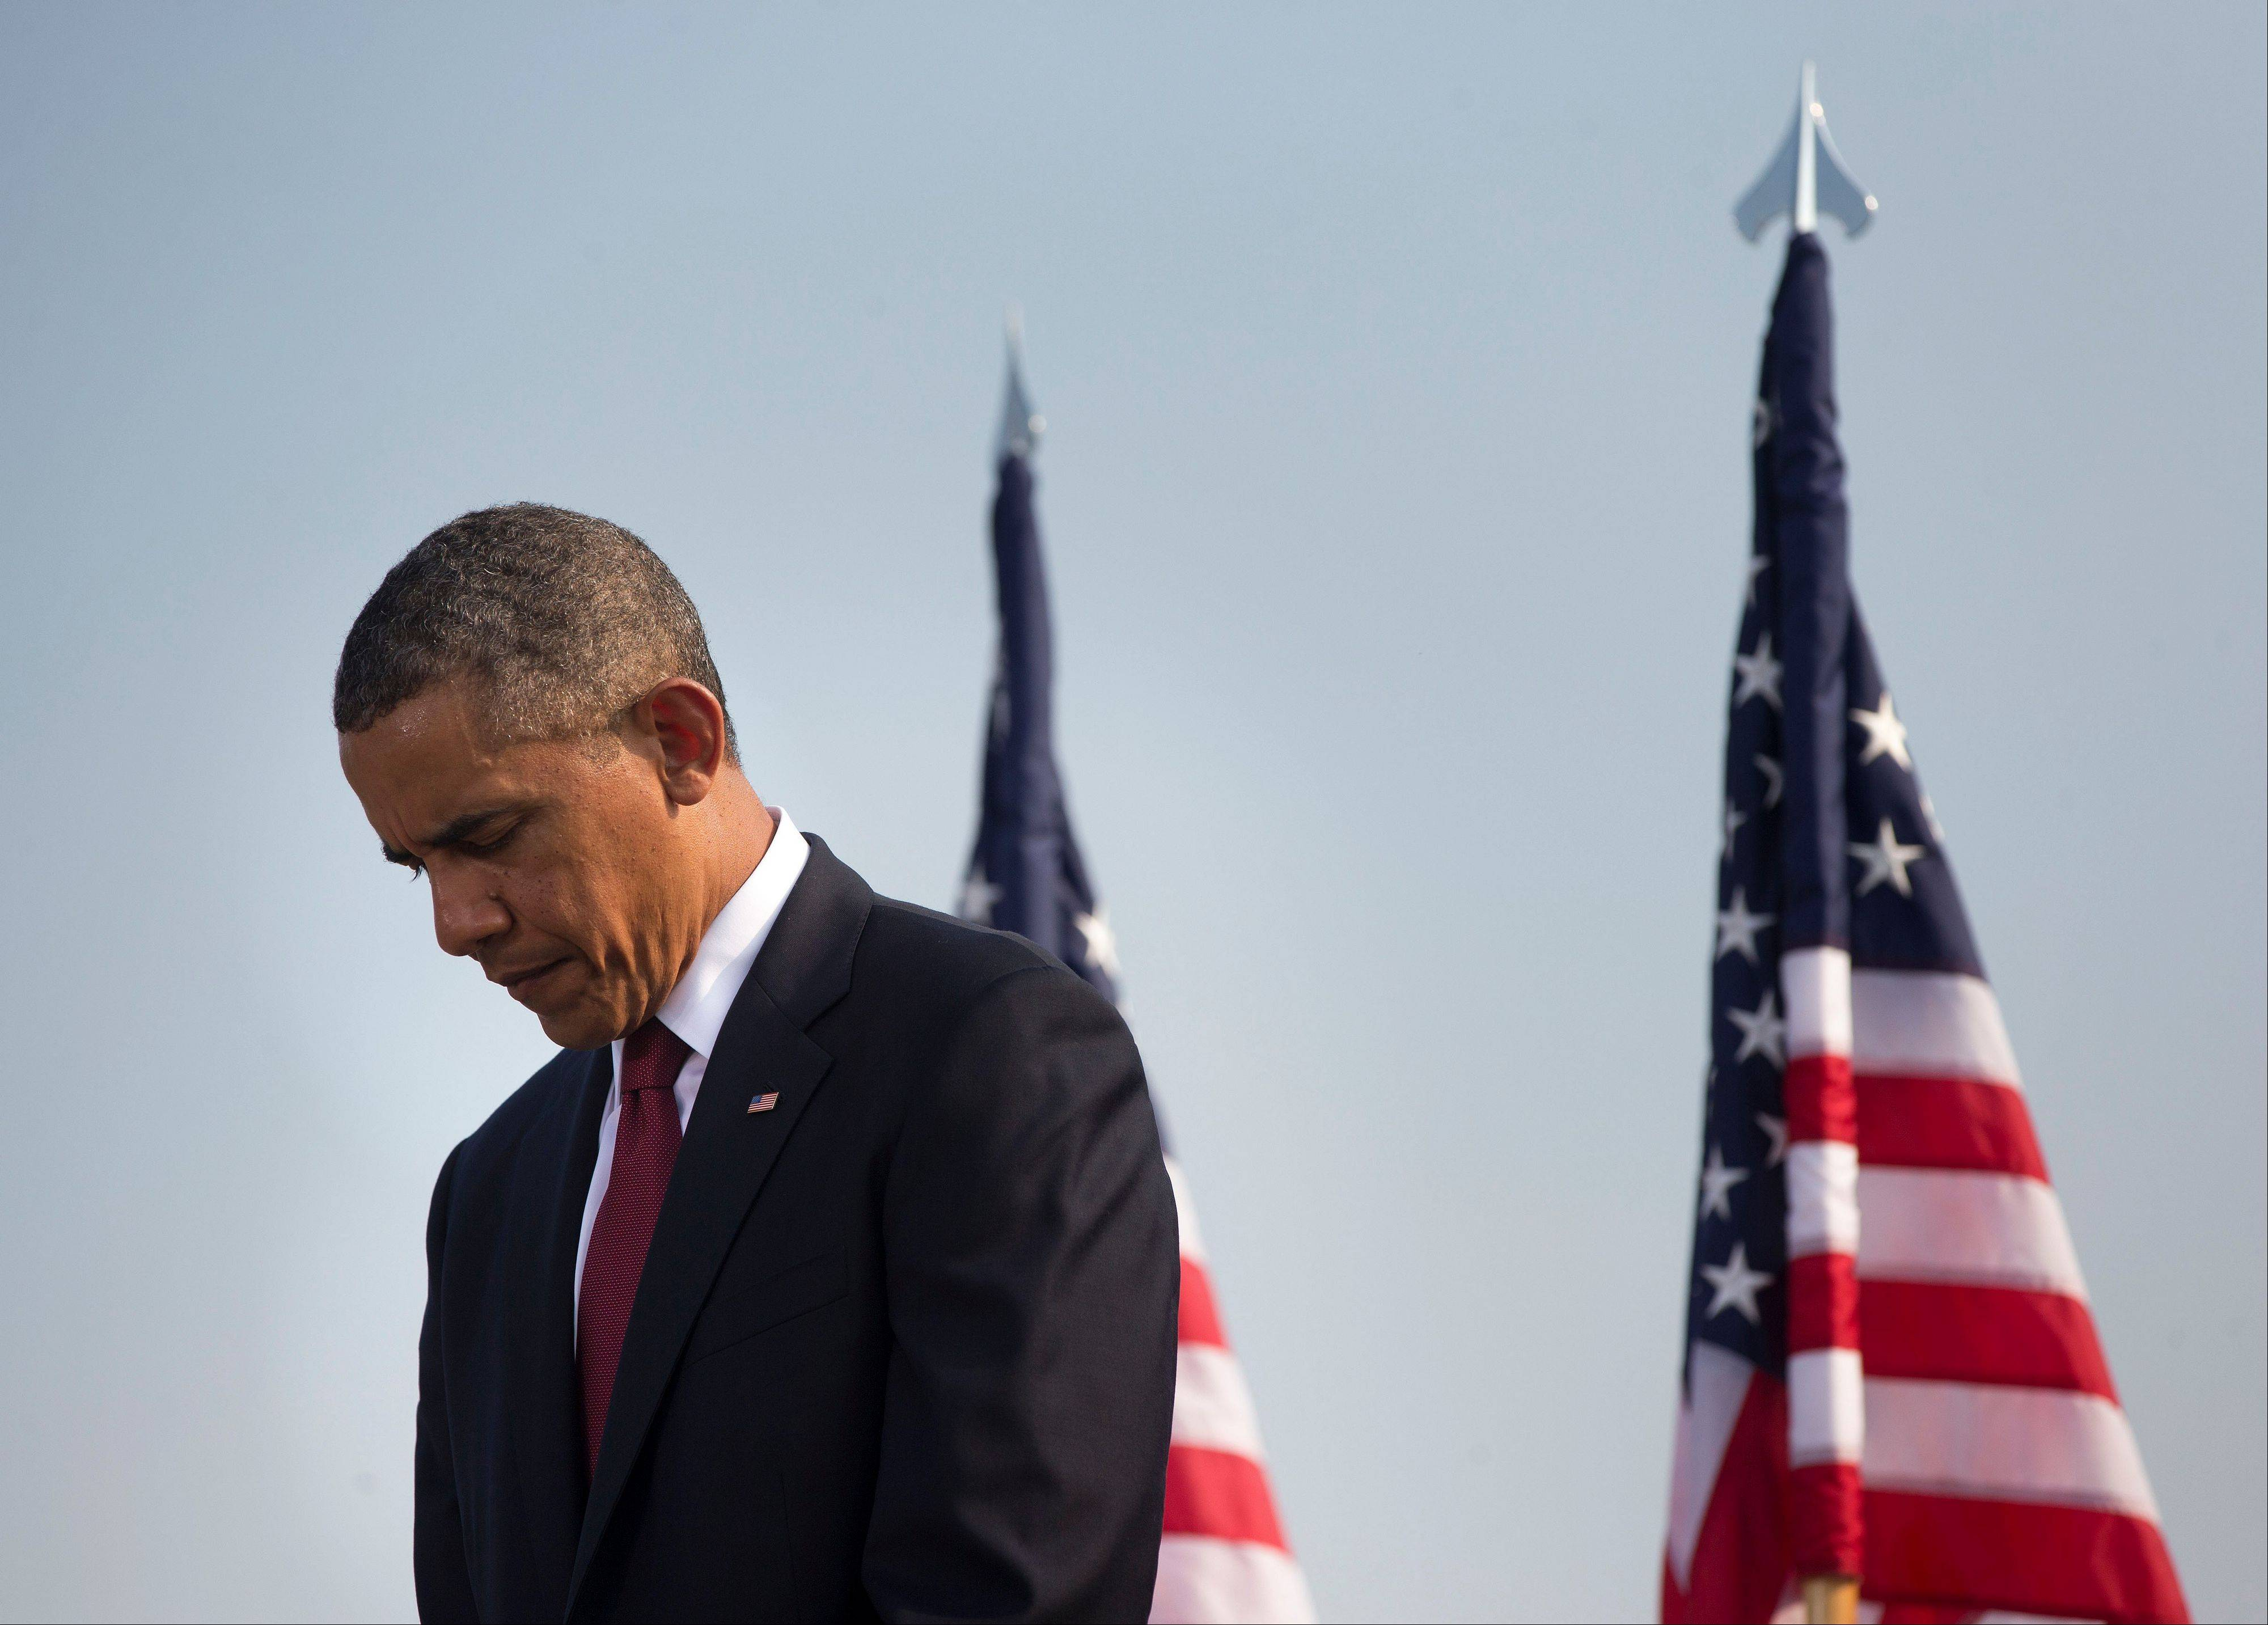 President Barack Obama lowers his head during a moment of silence at the Pentagon, Wednesday, Sept. 11, 2013, during a ceremony to mark the 12th anniversary of the 9/11 attacks.